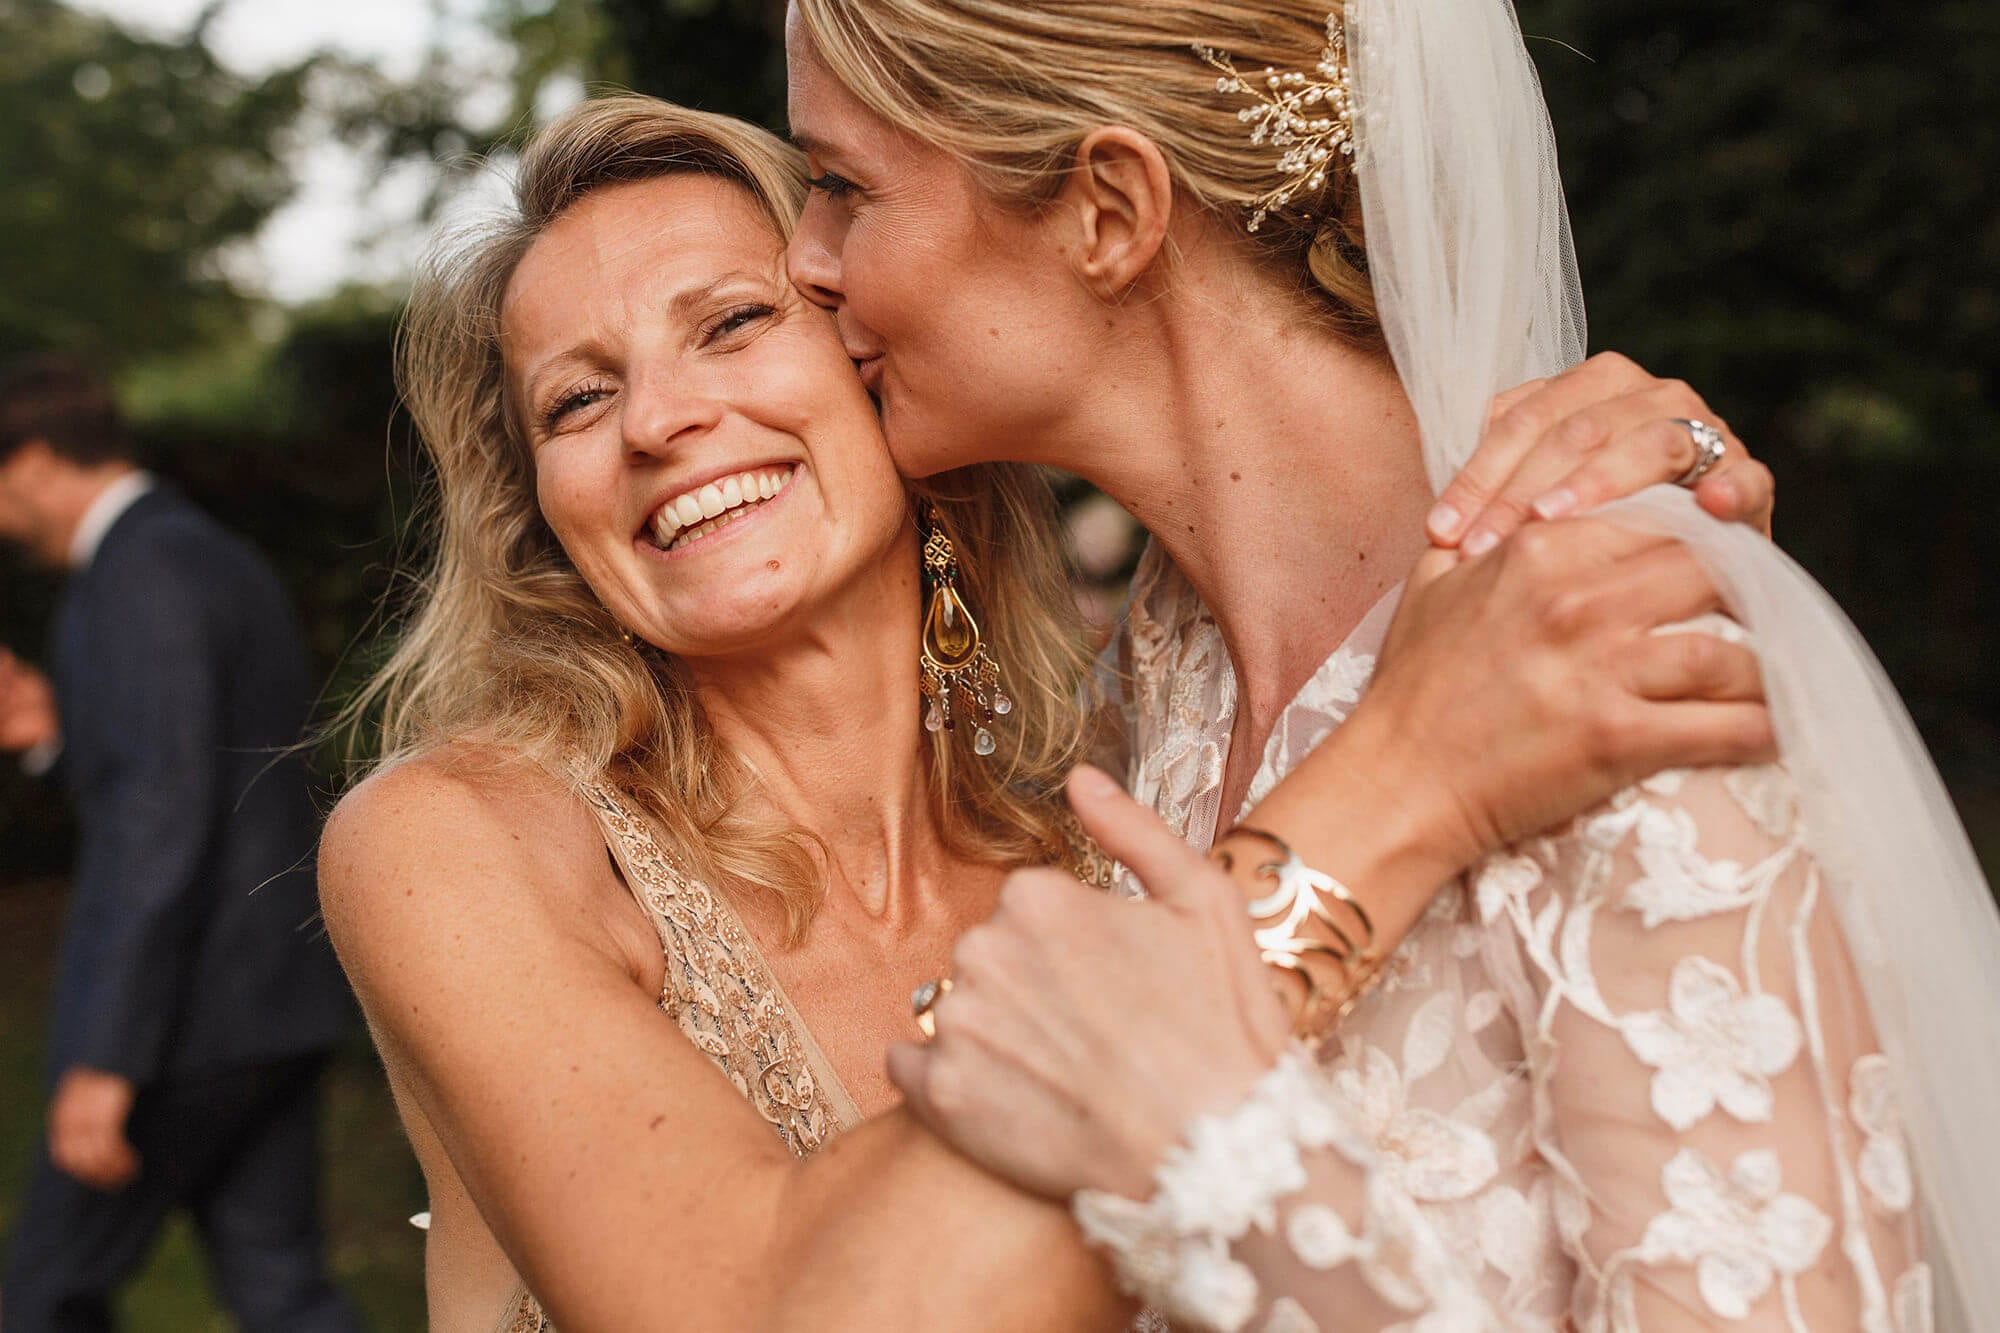 wedding photo of bride and friend